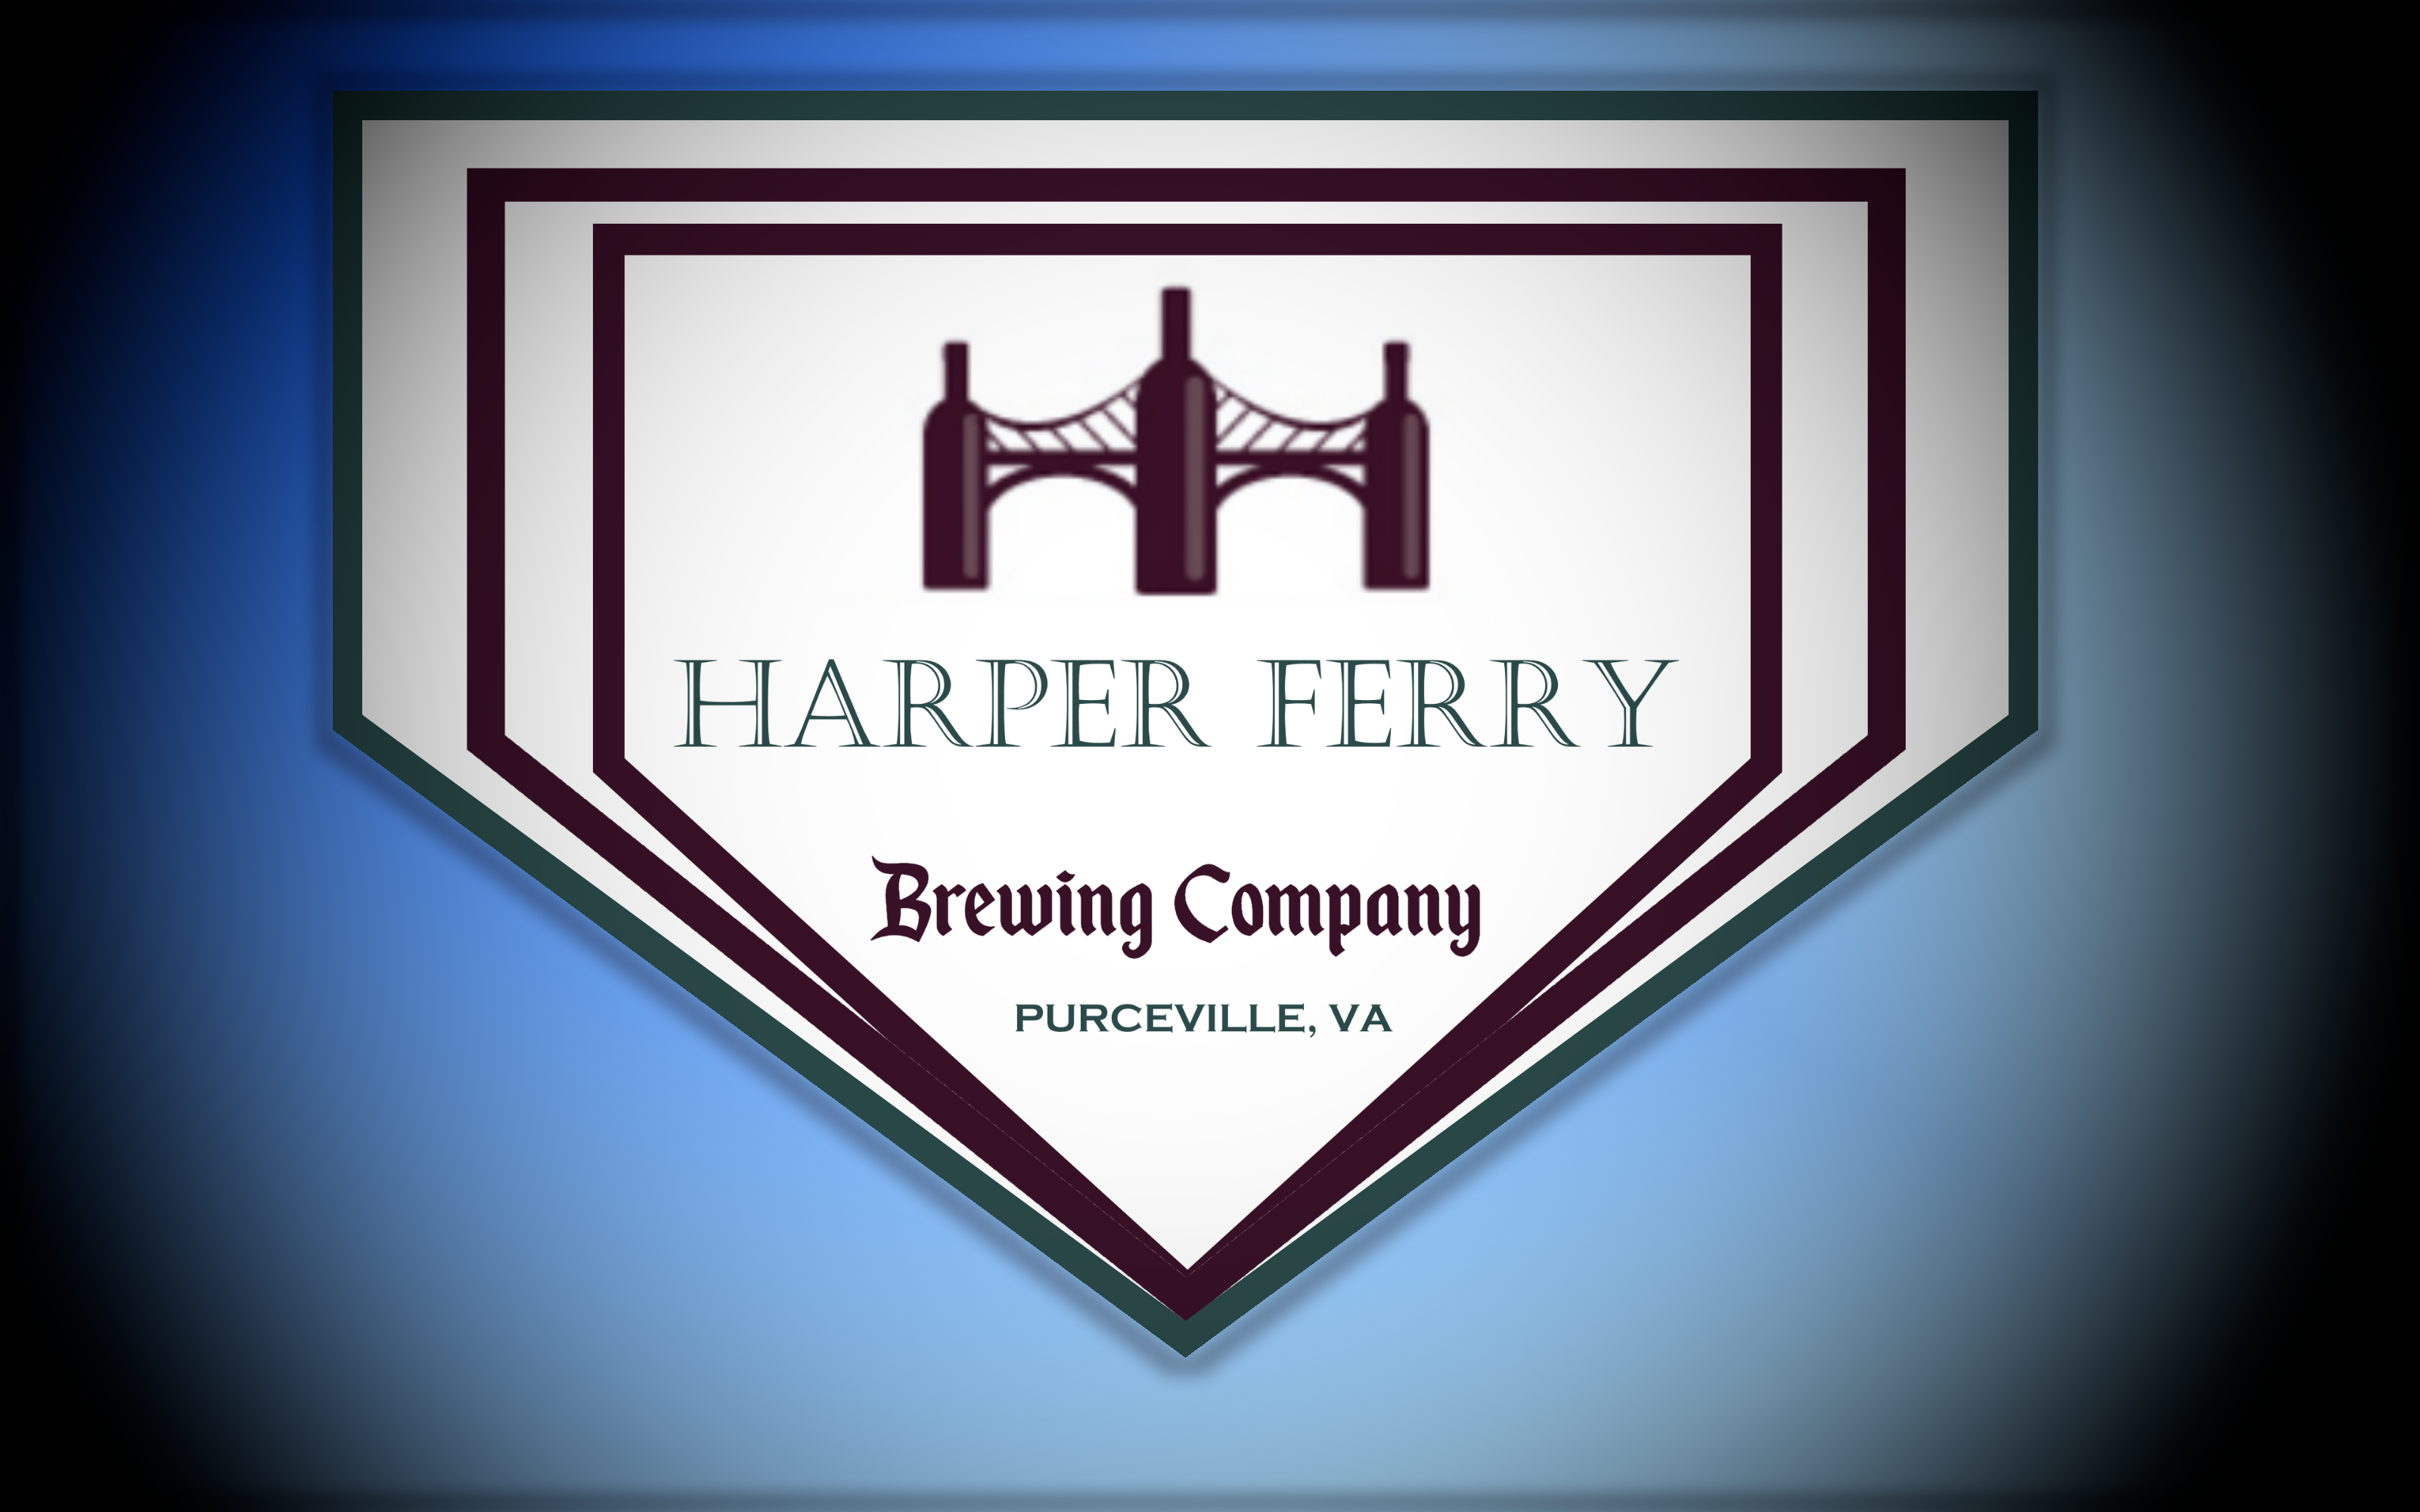 Logo Design by Roberto Bassi - Entry No. 147 in the Logo Design Contest Unique Logo Design Wanted for Harpers ferry brewing company.